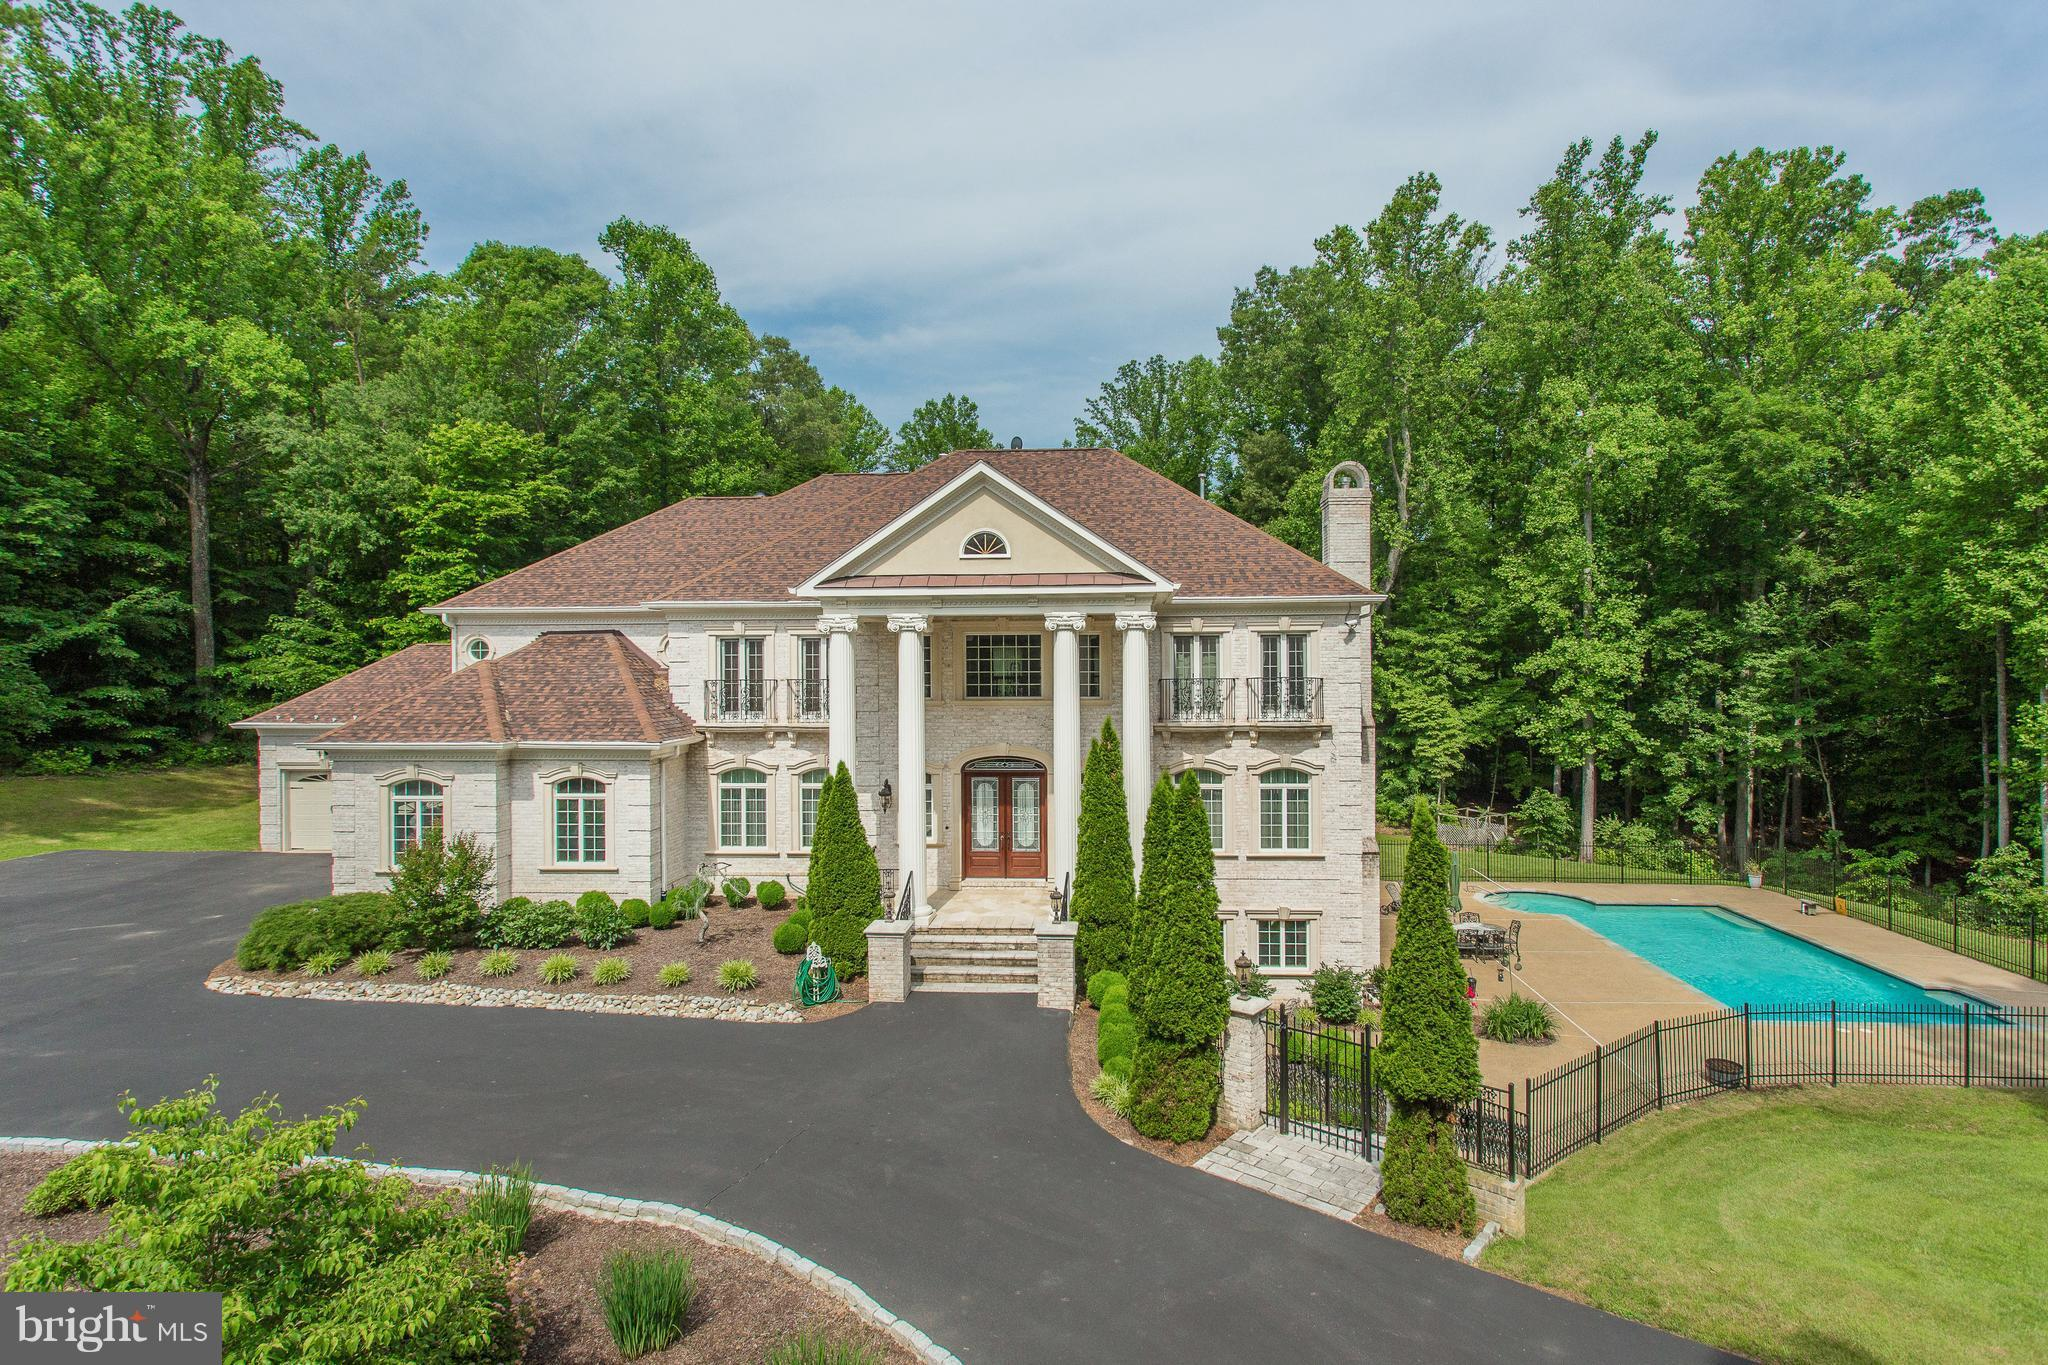 **MUST COME SEE** GORGEOUS private 5AC lot w/9500+total sqft estate of pure perfection! Exquisite details throughout w/ELEVATOR. 2-Story foyer w/curved staircase & formal LR & DR. Chef's caliber dream come true kit. 2-Story FR w/coffered ceil, frpl & view of UL landing. Luxurious master Ste w/frpl, Juliet balcony, 2 WIC & grand BA. Entertaining LL w/wet bar, RR & media rm. Gorgeous pool & 4 car gar.